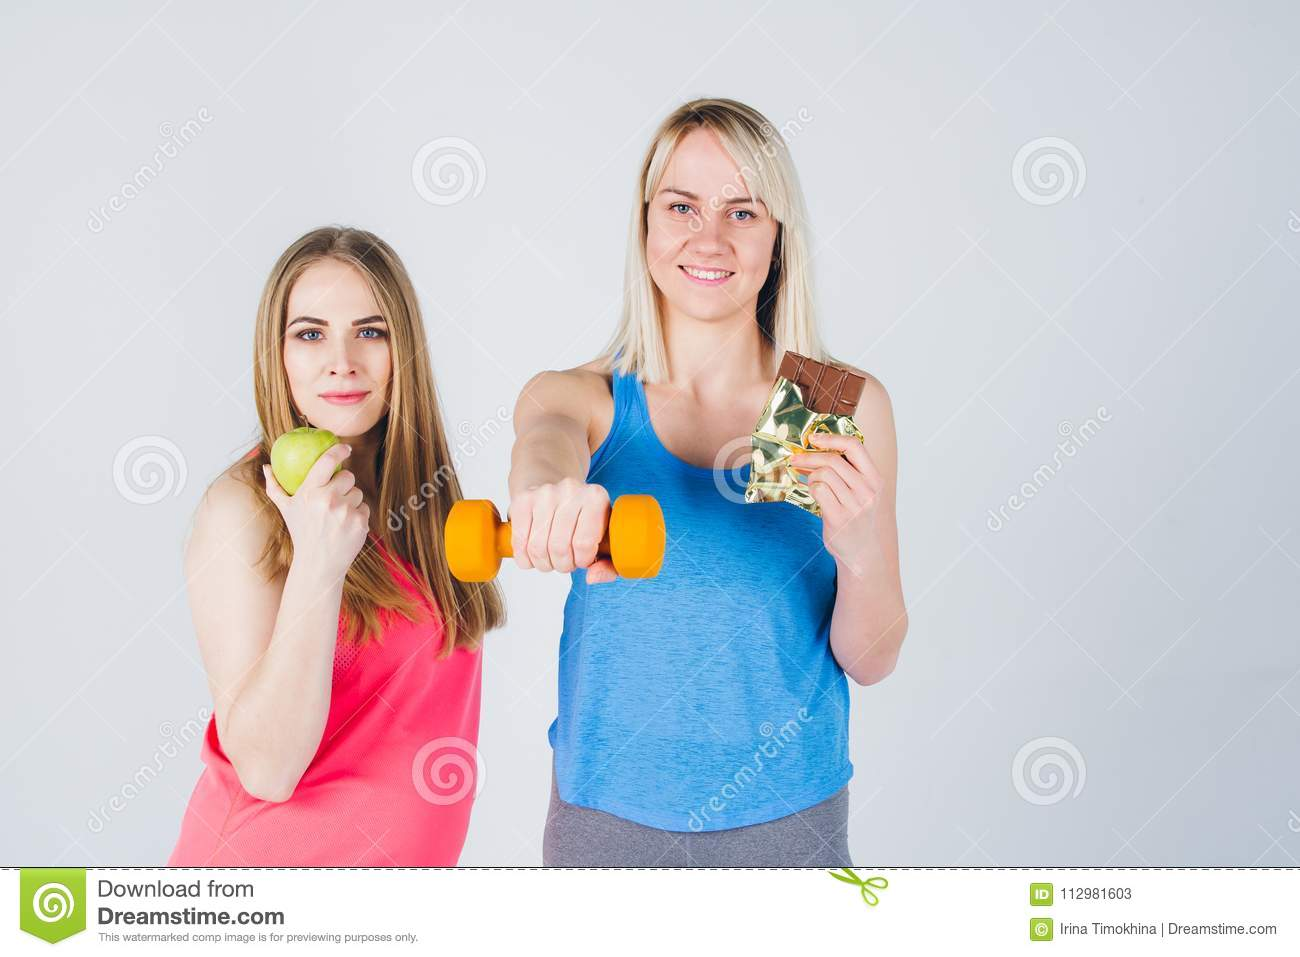 Pregnant girl and her friend eat an Apple and chocolate